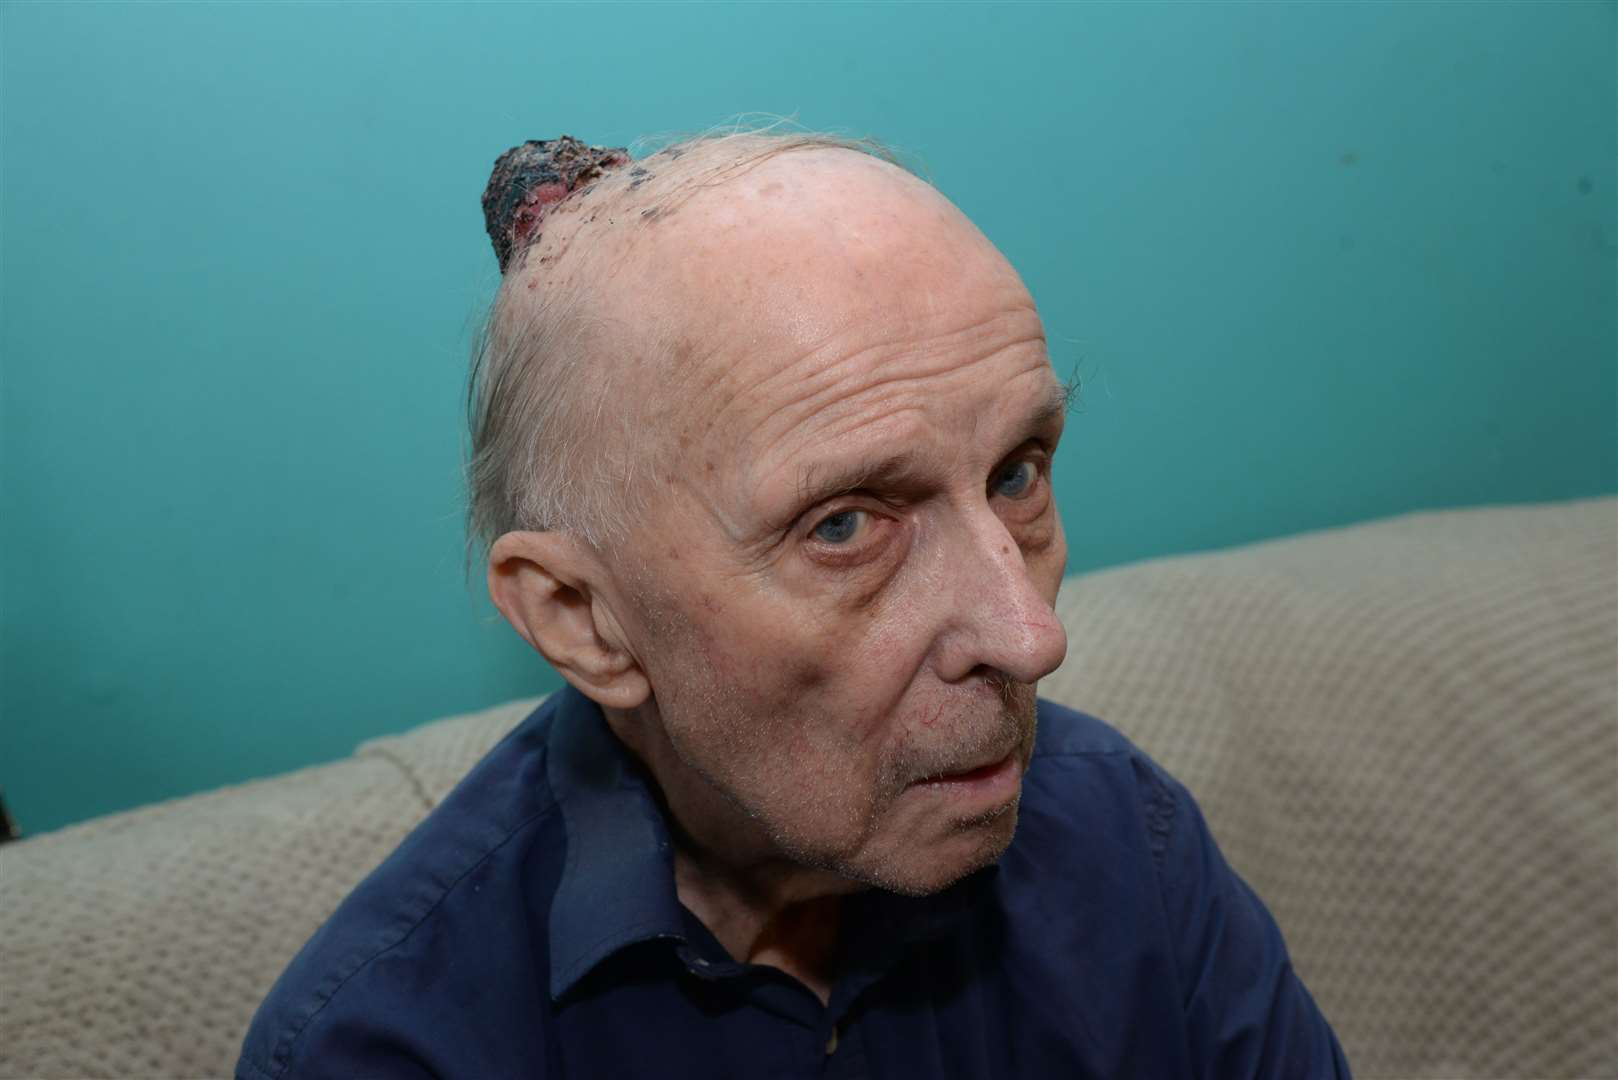 George Hobbs from Gillingham has been left with a huge growth on his head that turned out to be skin cancer. Picture: Chris Davey